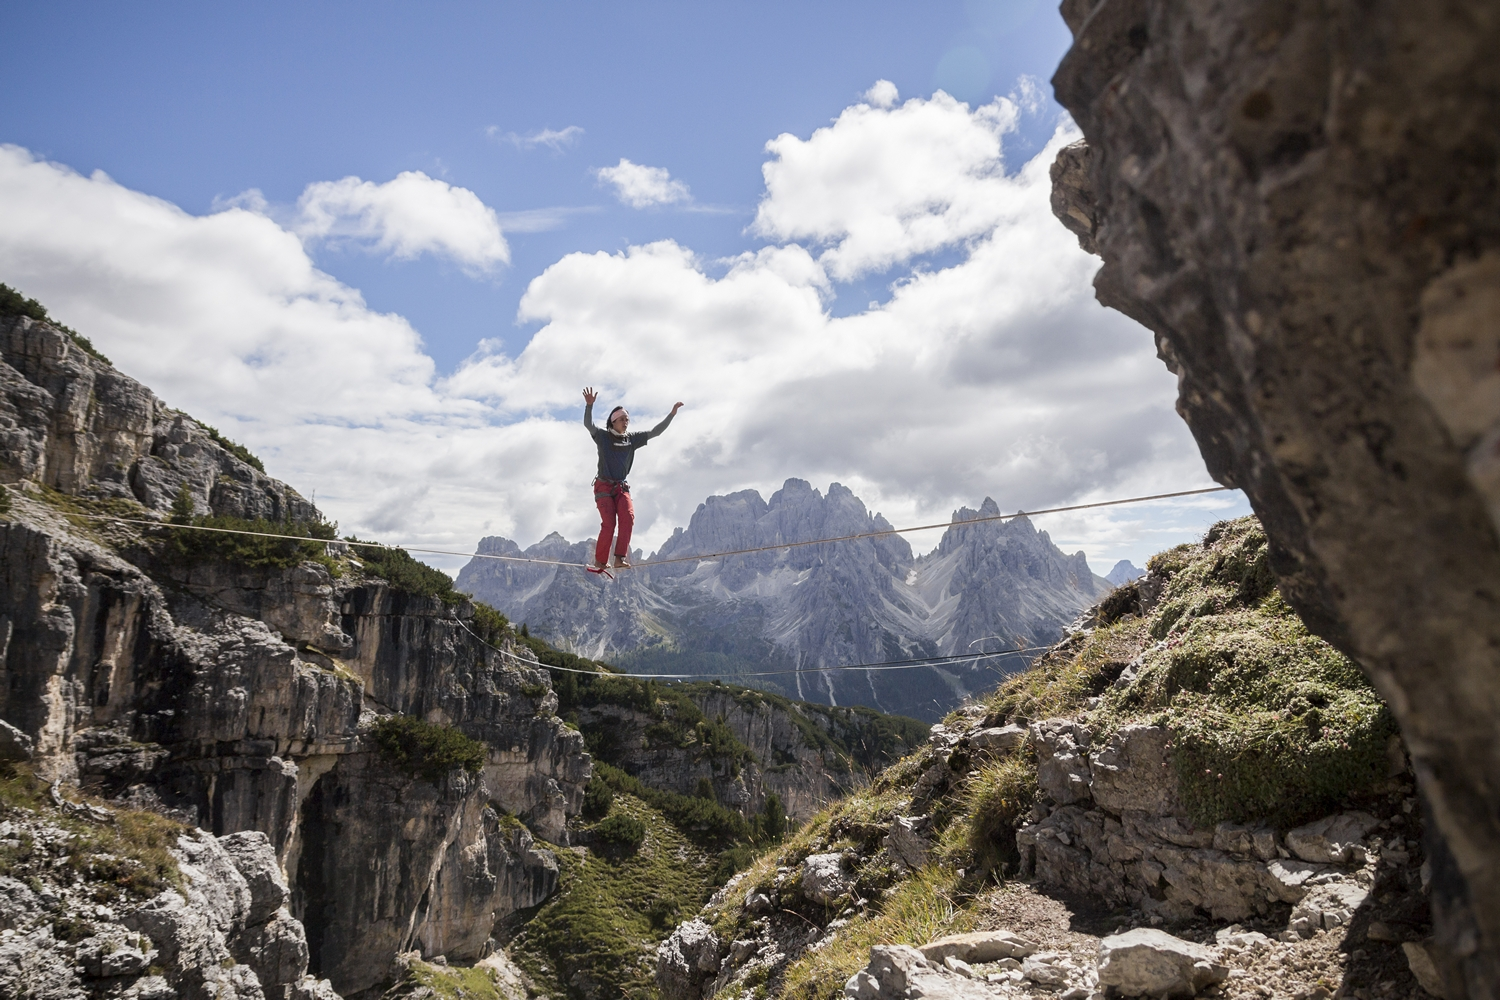 orosz_adam_outdoorinhales_highline_monte_piana_2014_14